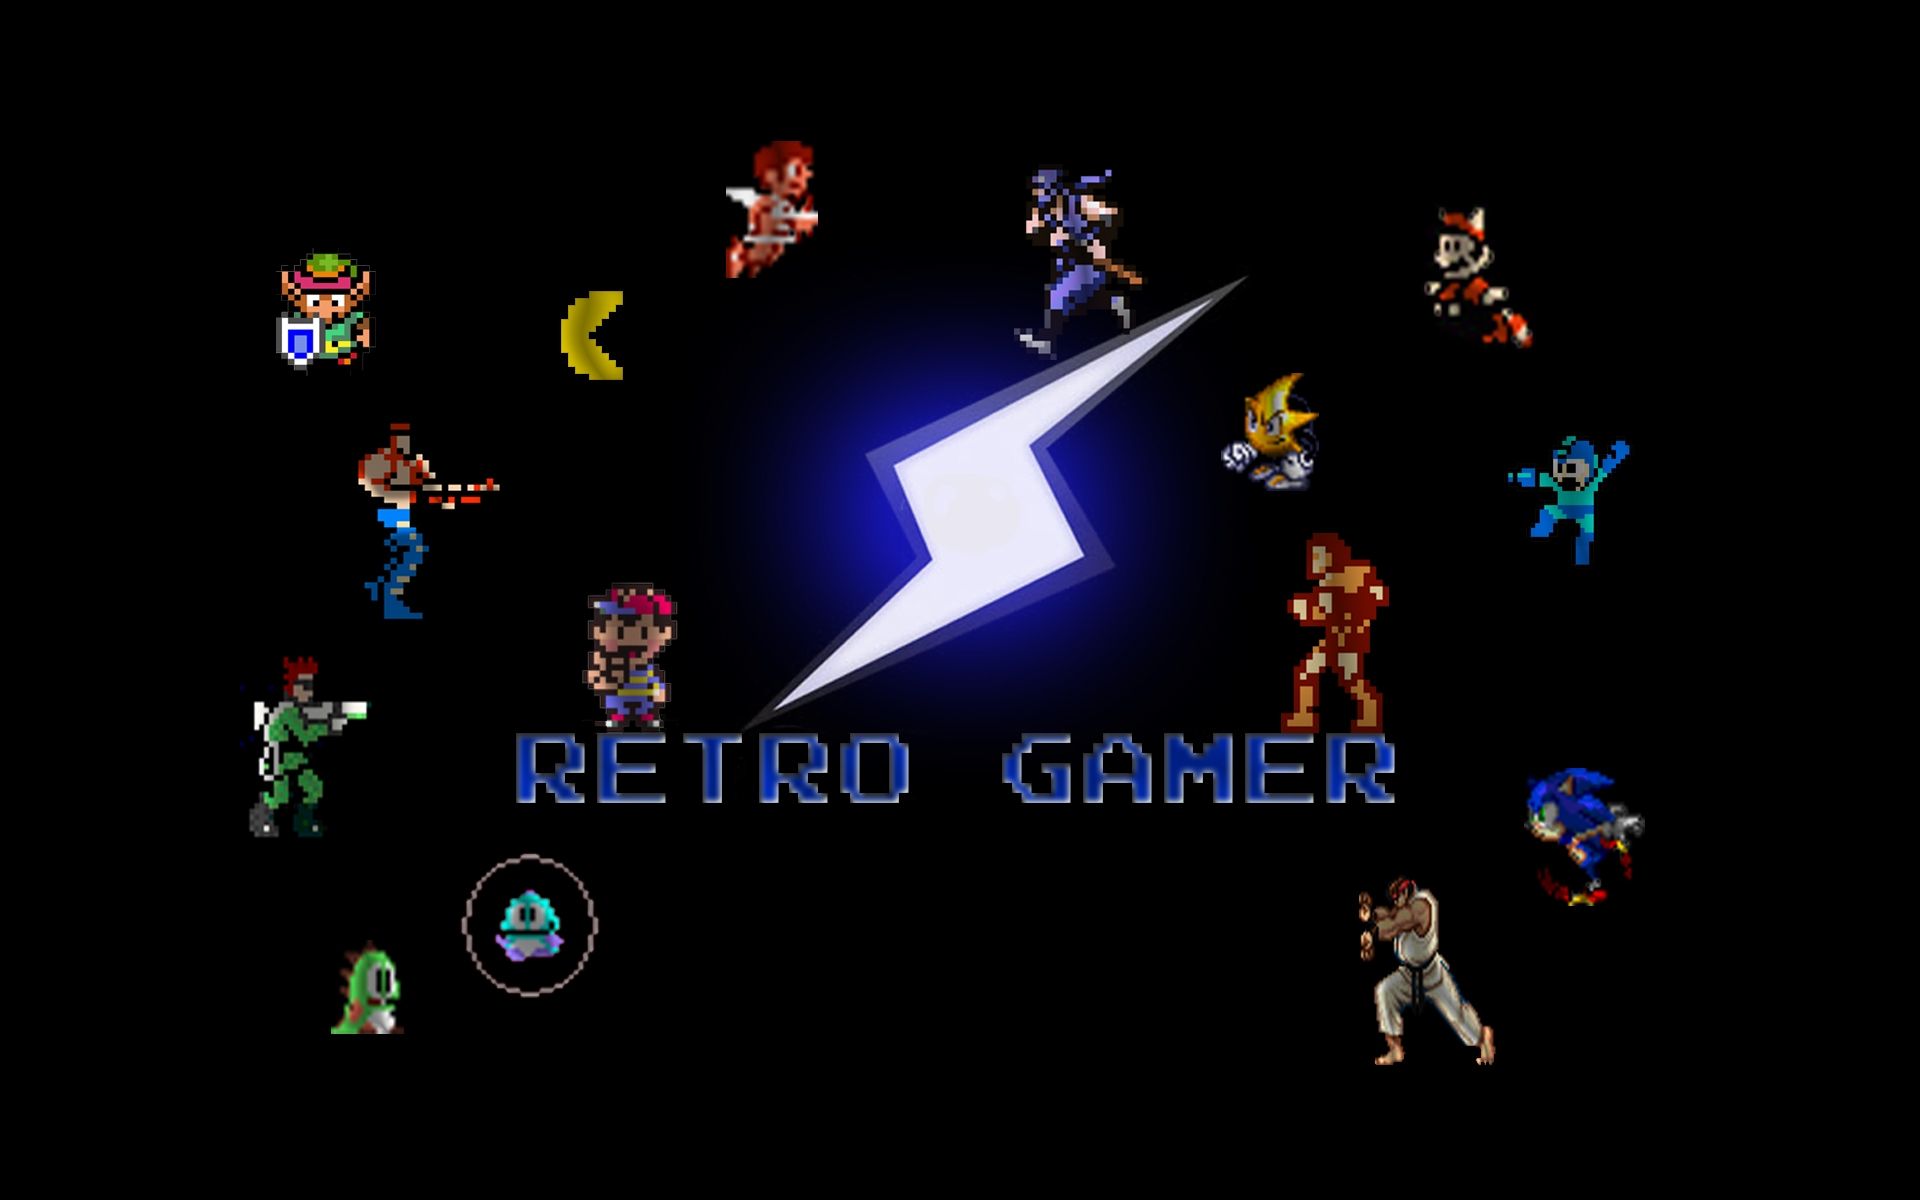 Retro Gaming Wallpaper High Resolution: Pack Wallpapers, Photos And Desktop Backgrounds Up To 8K